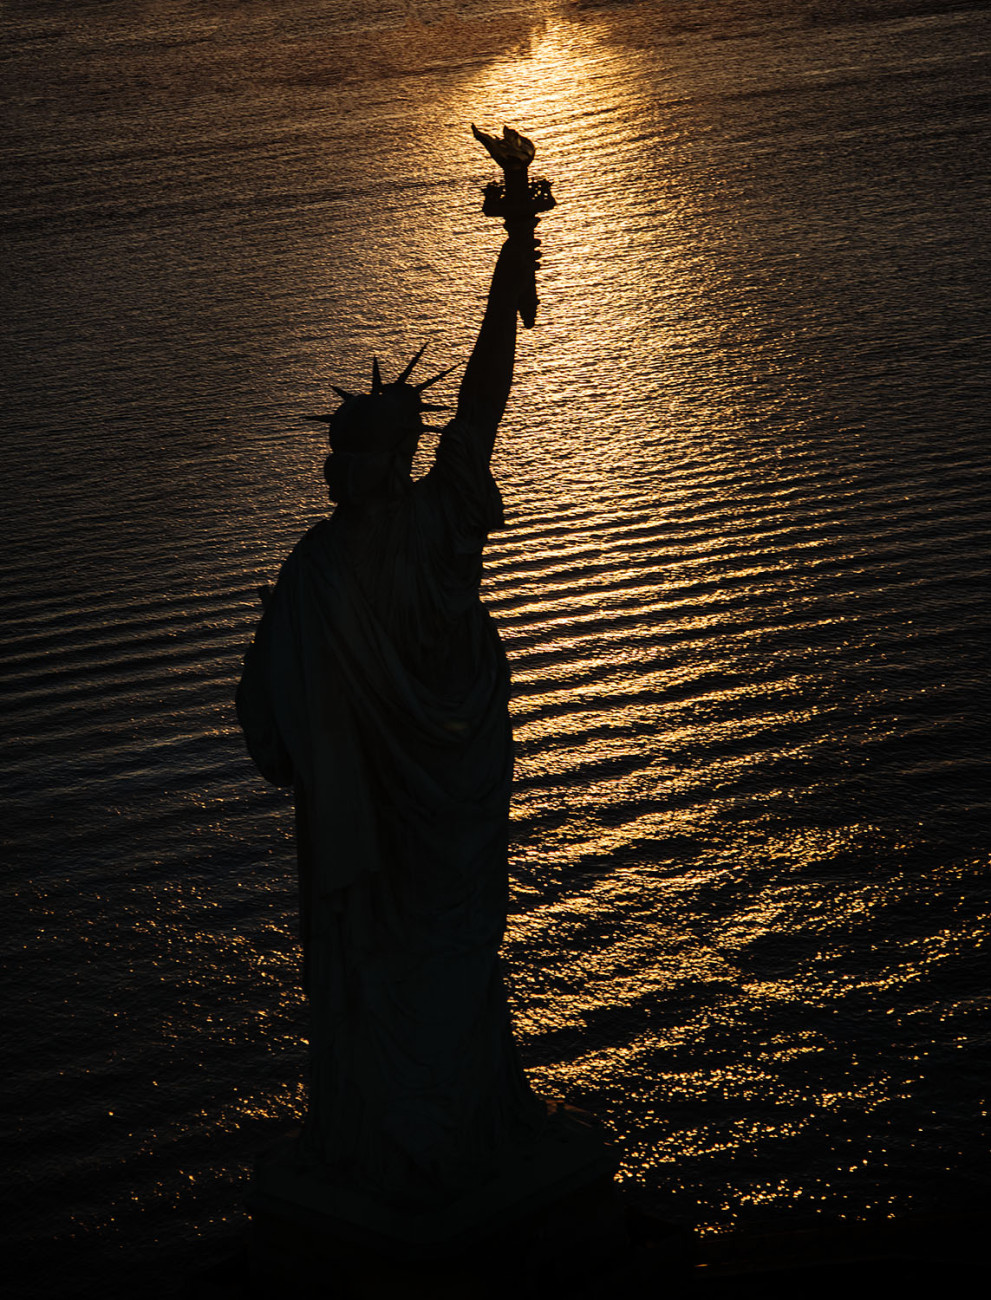 Dawn reflections Statue of Liberty, NY, 2016